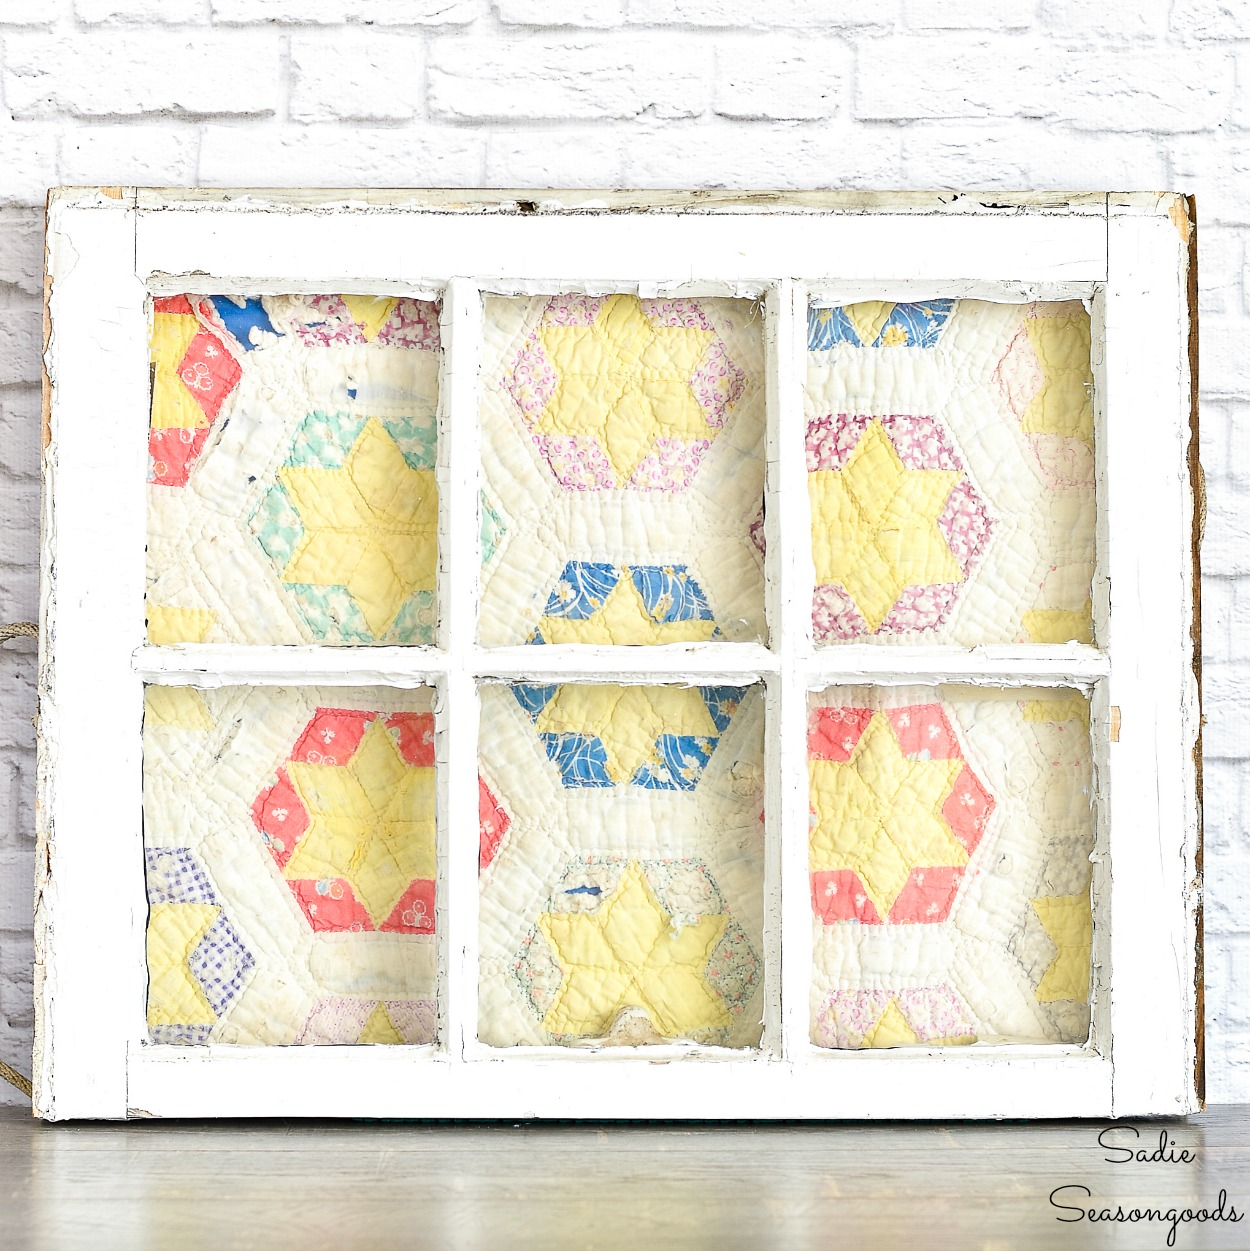 Upcycling a Vintage Window as a Quilt Frame for an Antique Quilt